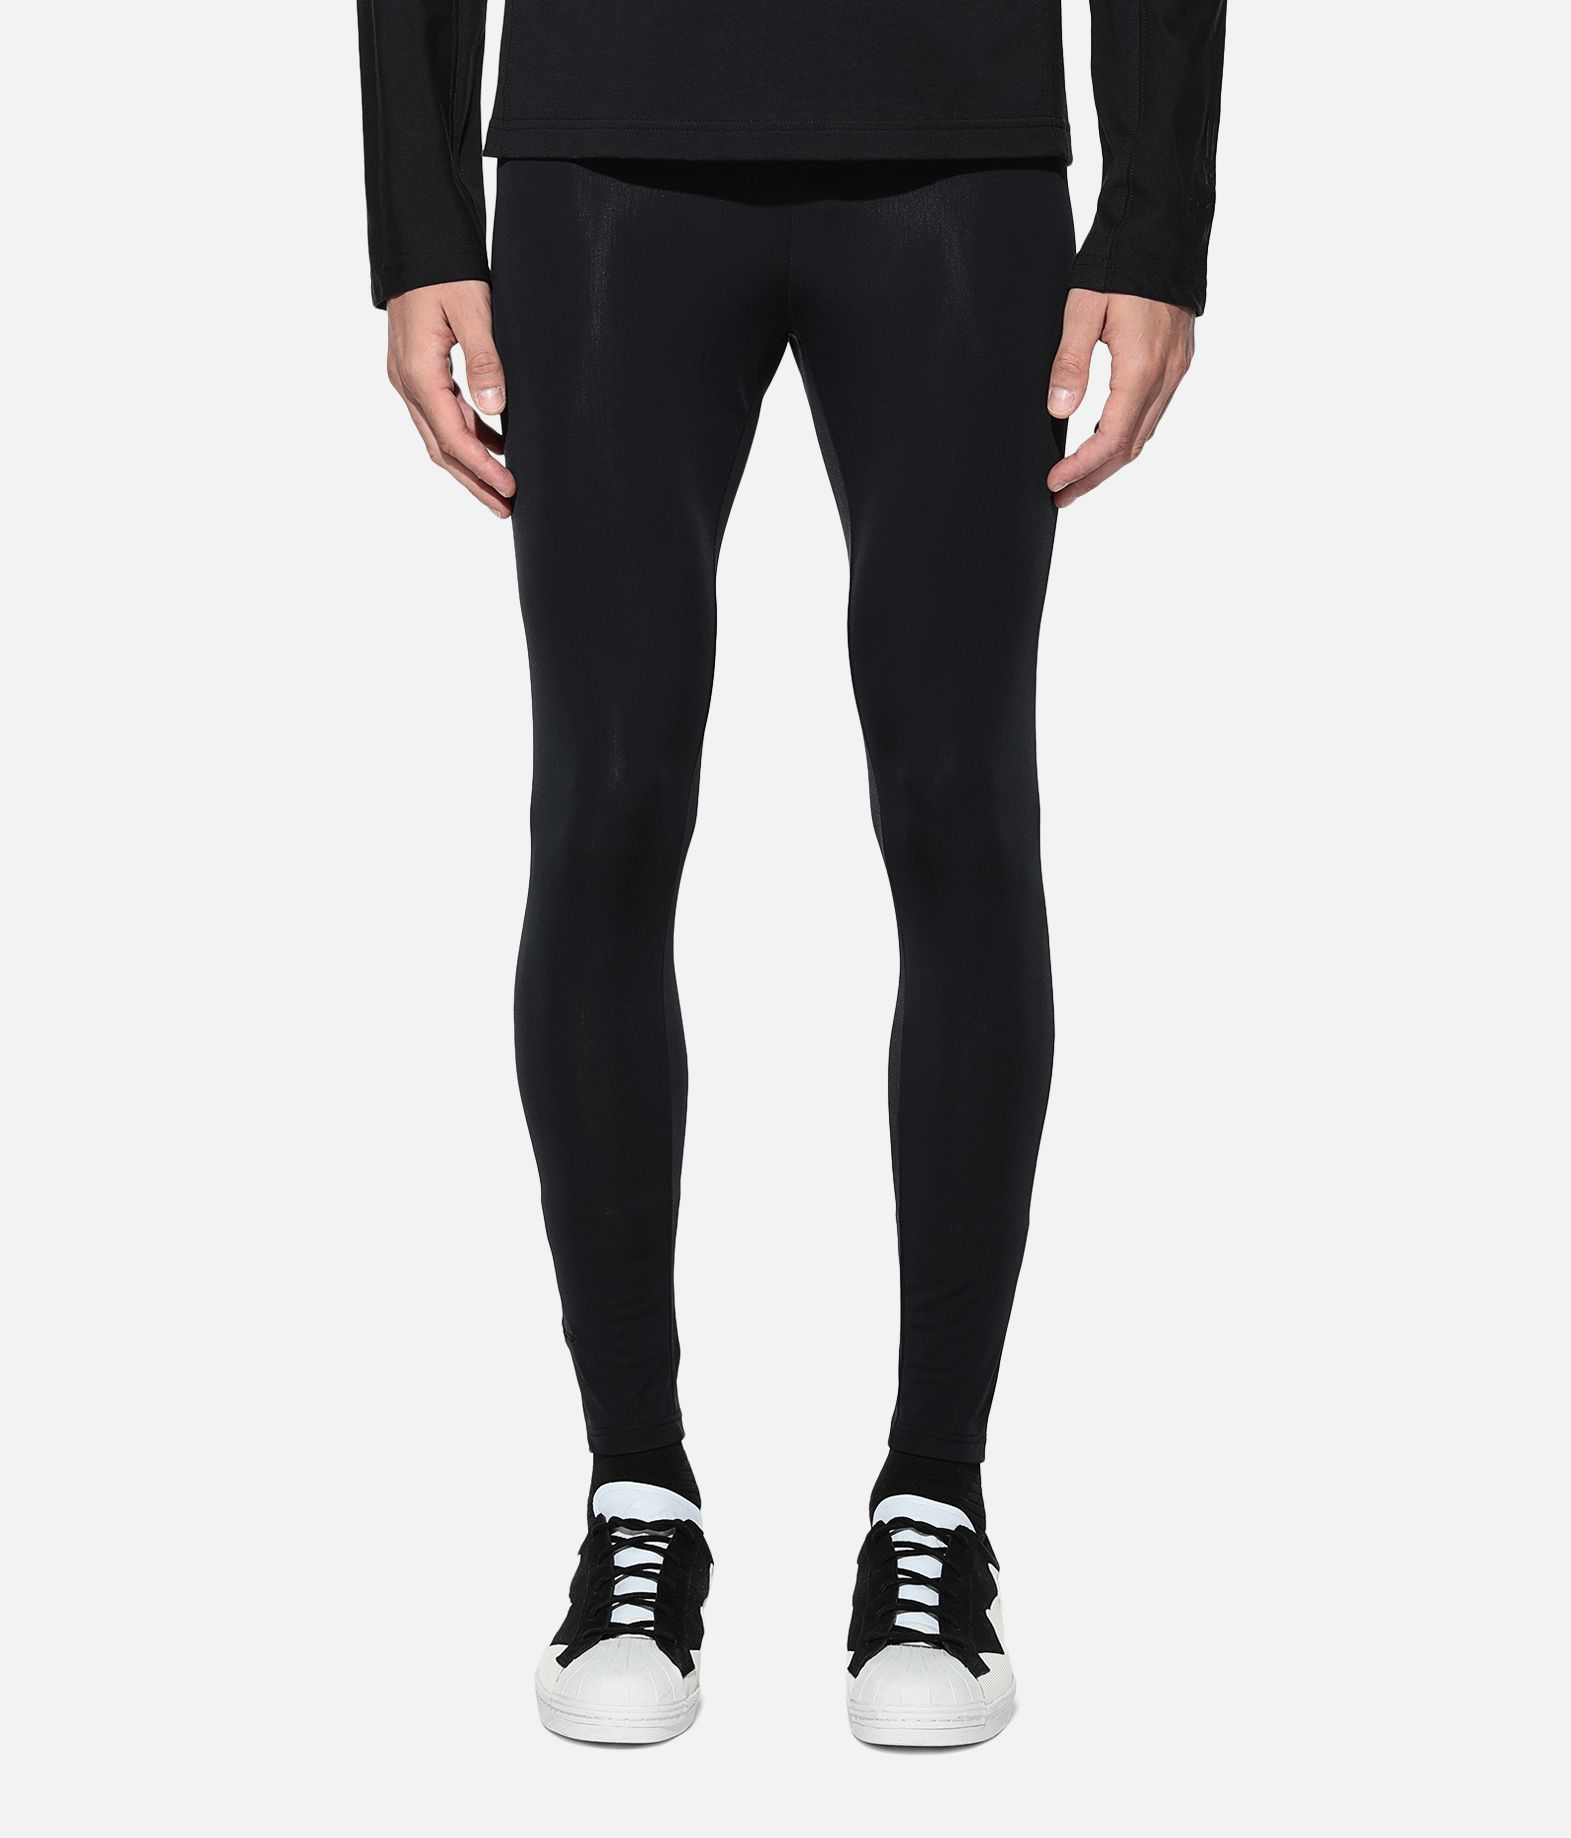 Y-3 Y-3 New Classic Tights Leggings Herren r